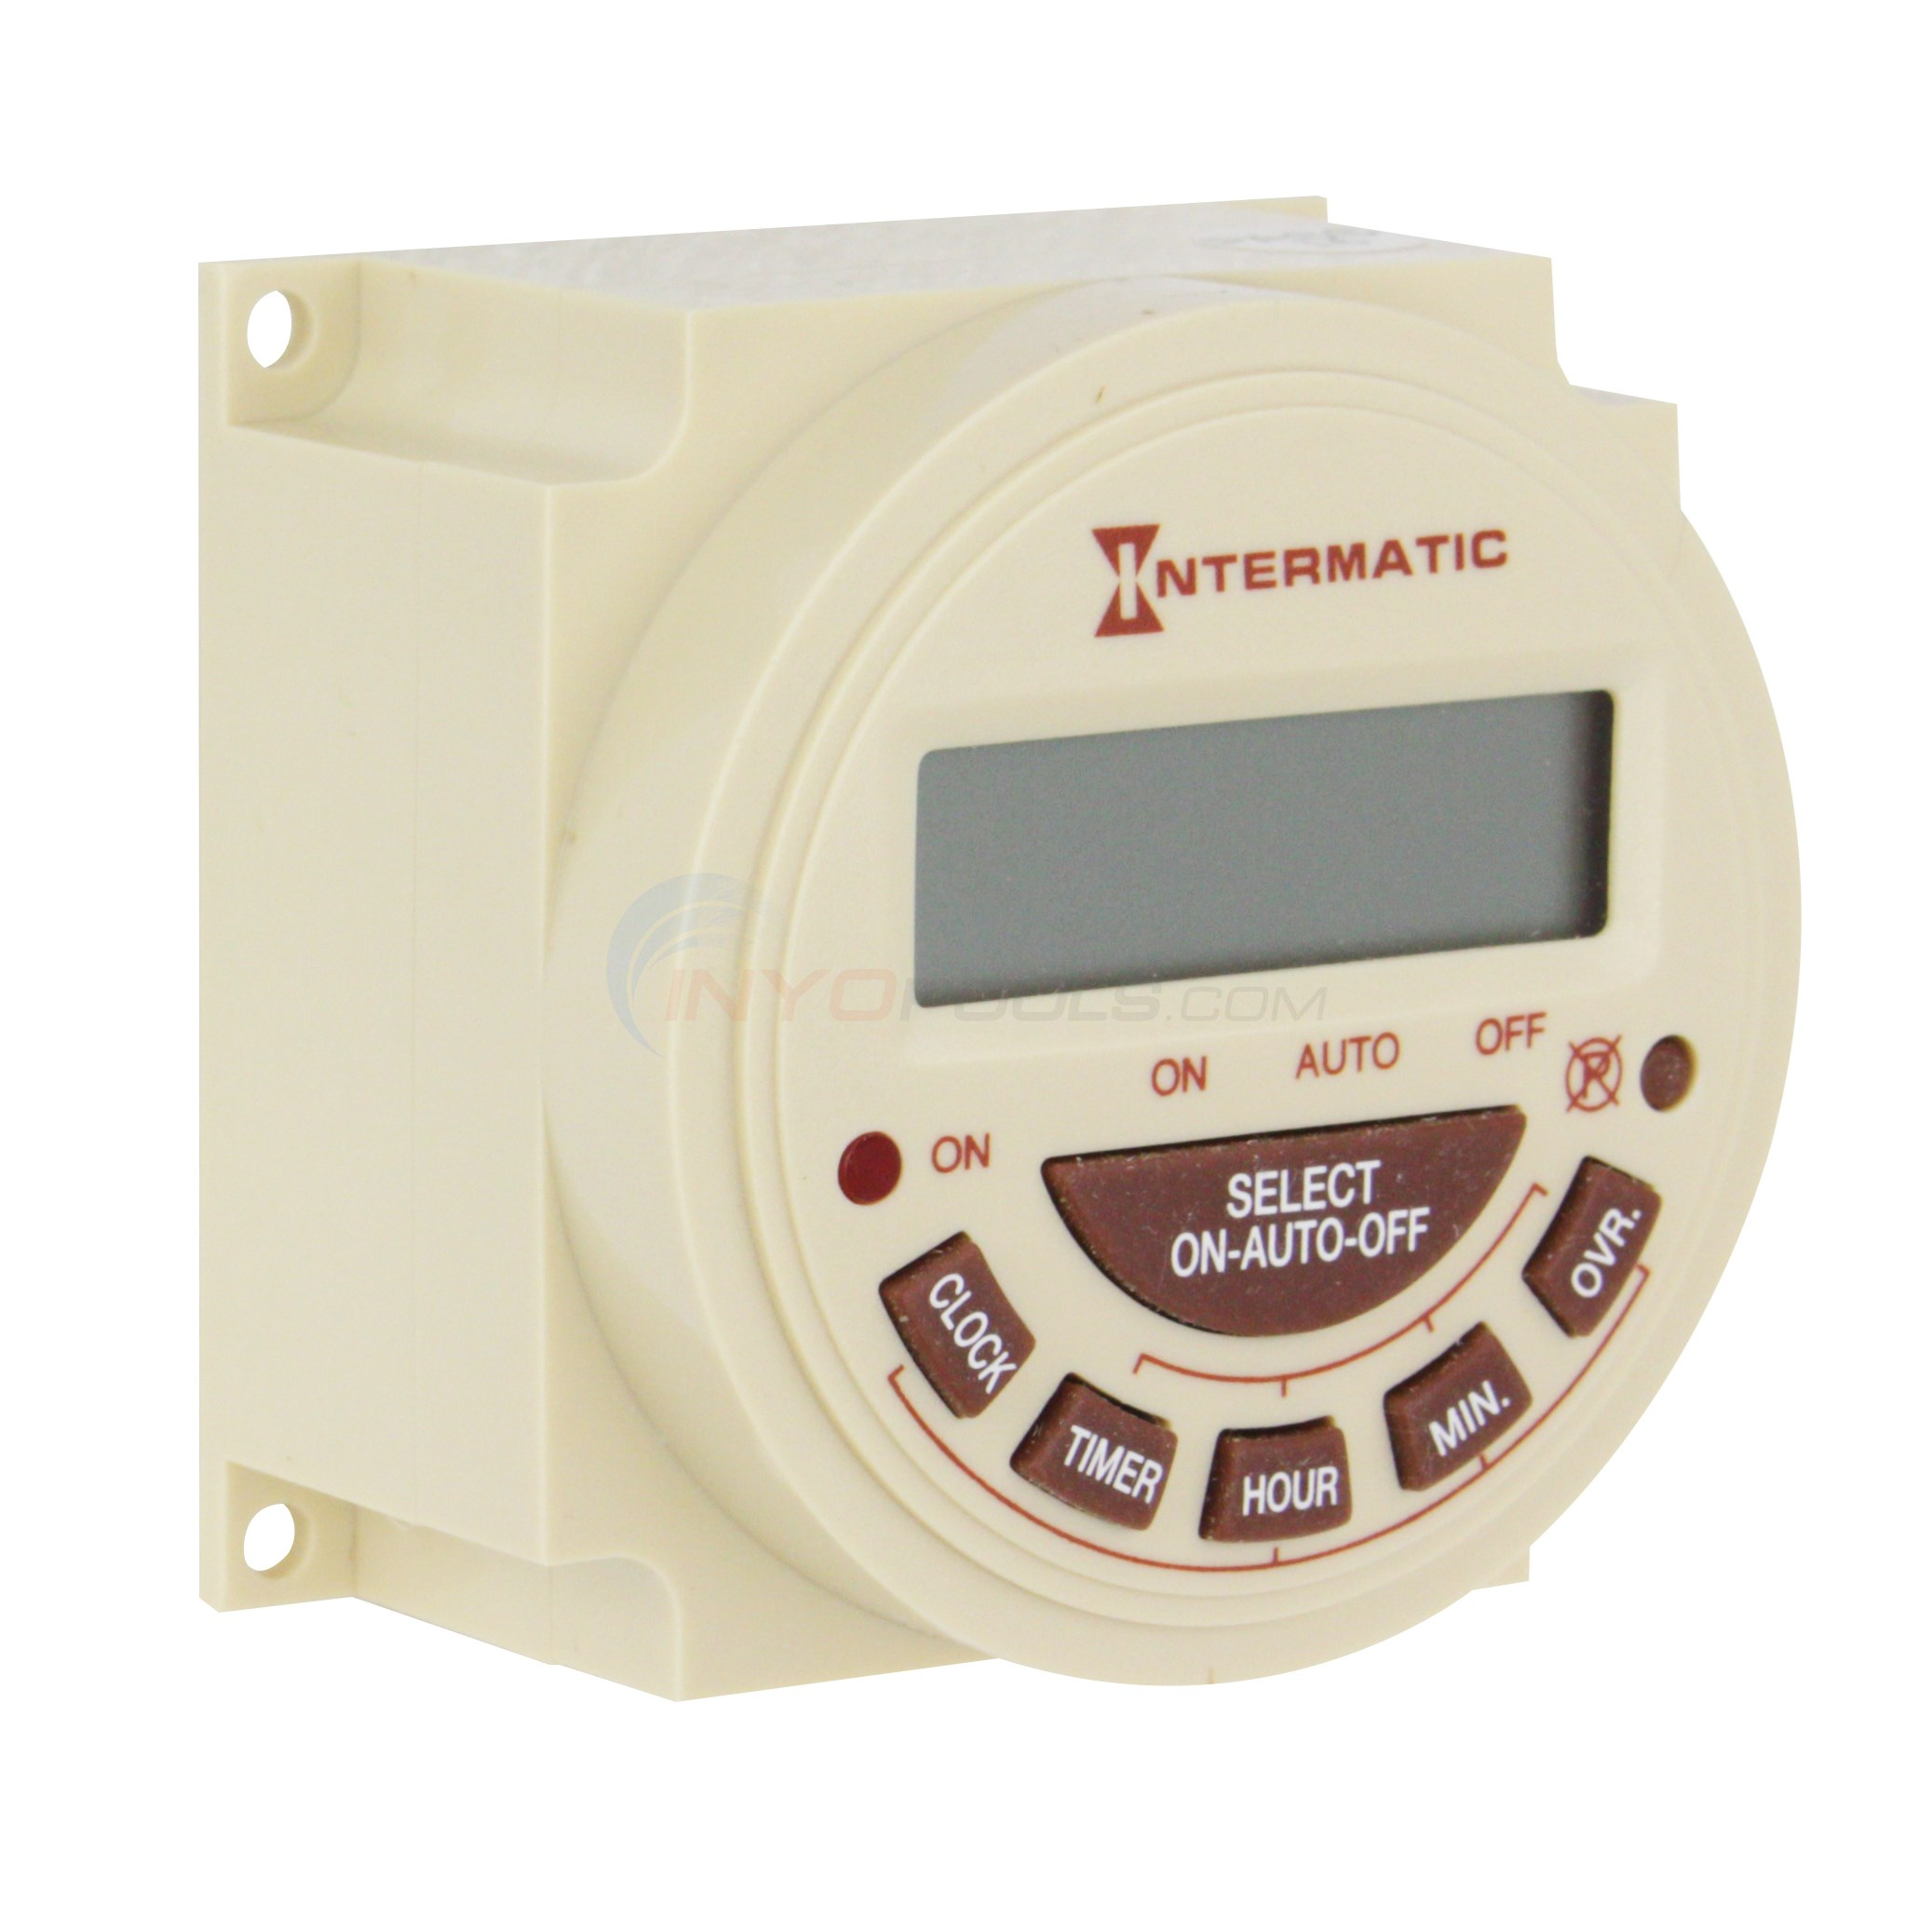 Wiring Diagram Intermatic Pb313e Electrical Diagrams Spdt T106m 24 Hour Compact Electronic Timer Mechanism